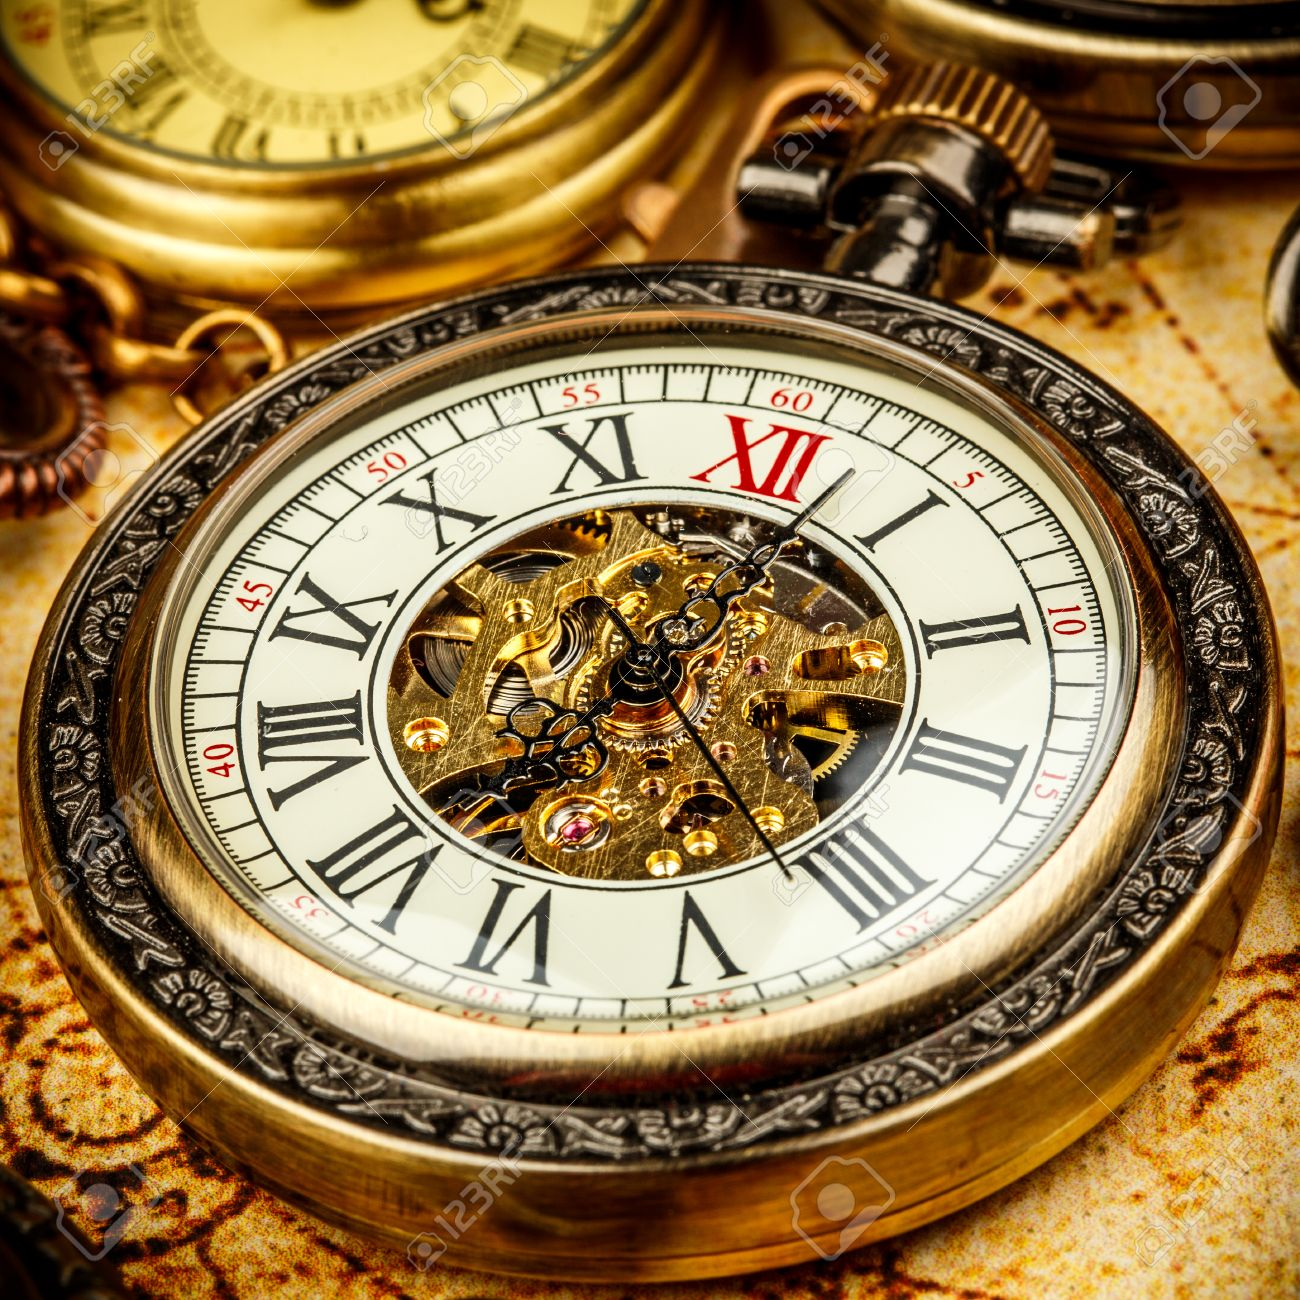 Vintage Antique Pocket Watch Stock Photo Picture And Royalty Free